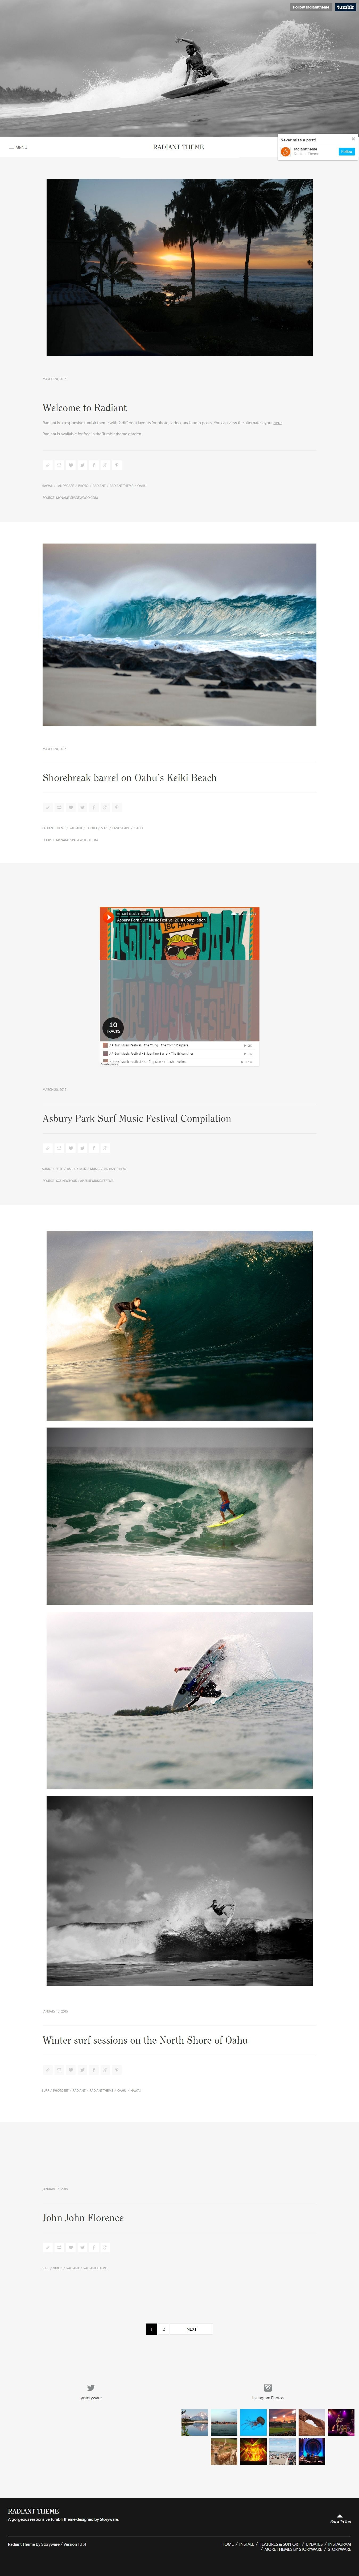 Radiant - Free Minimal Tumblr Blog Theme